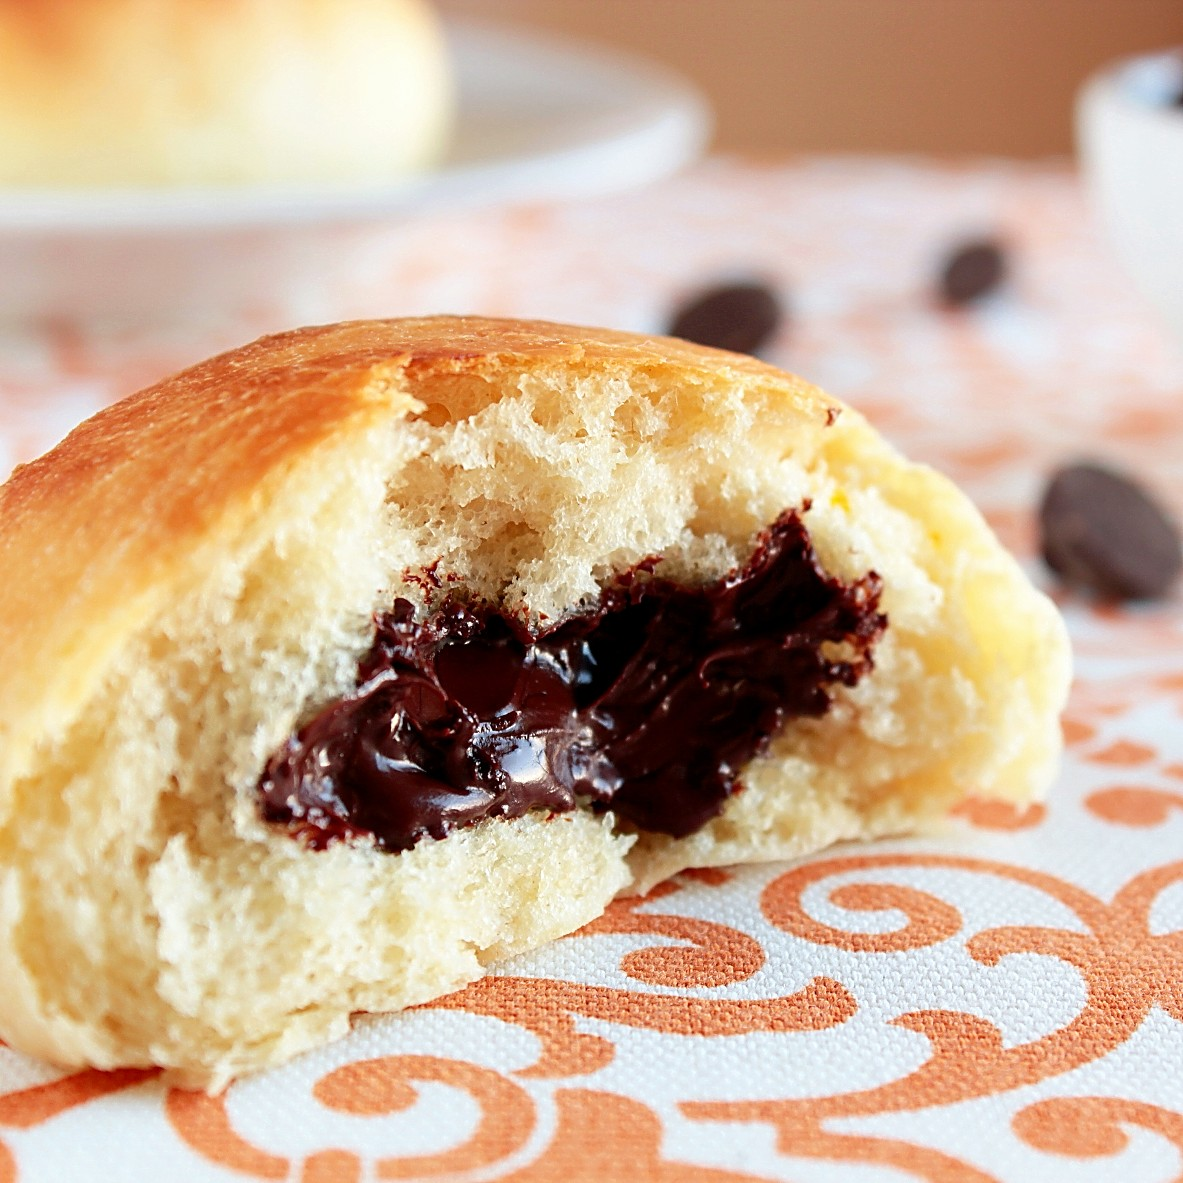 Chocolate Filled Buns